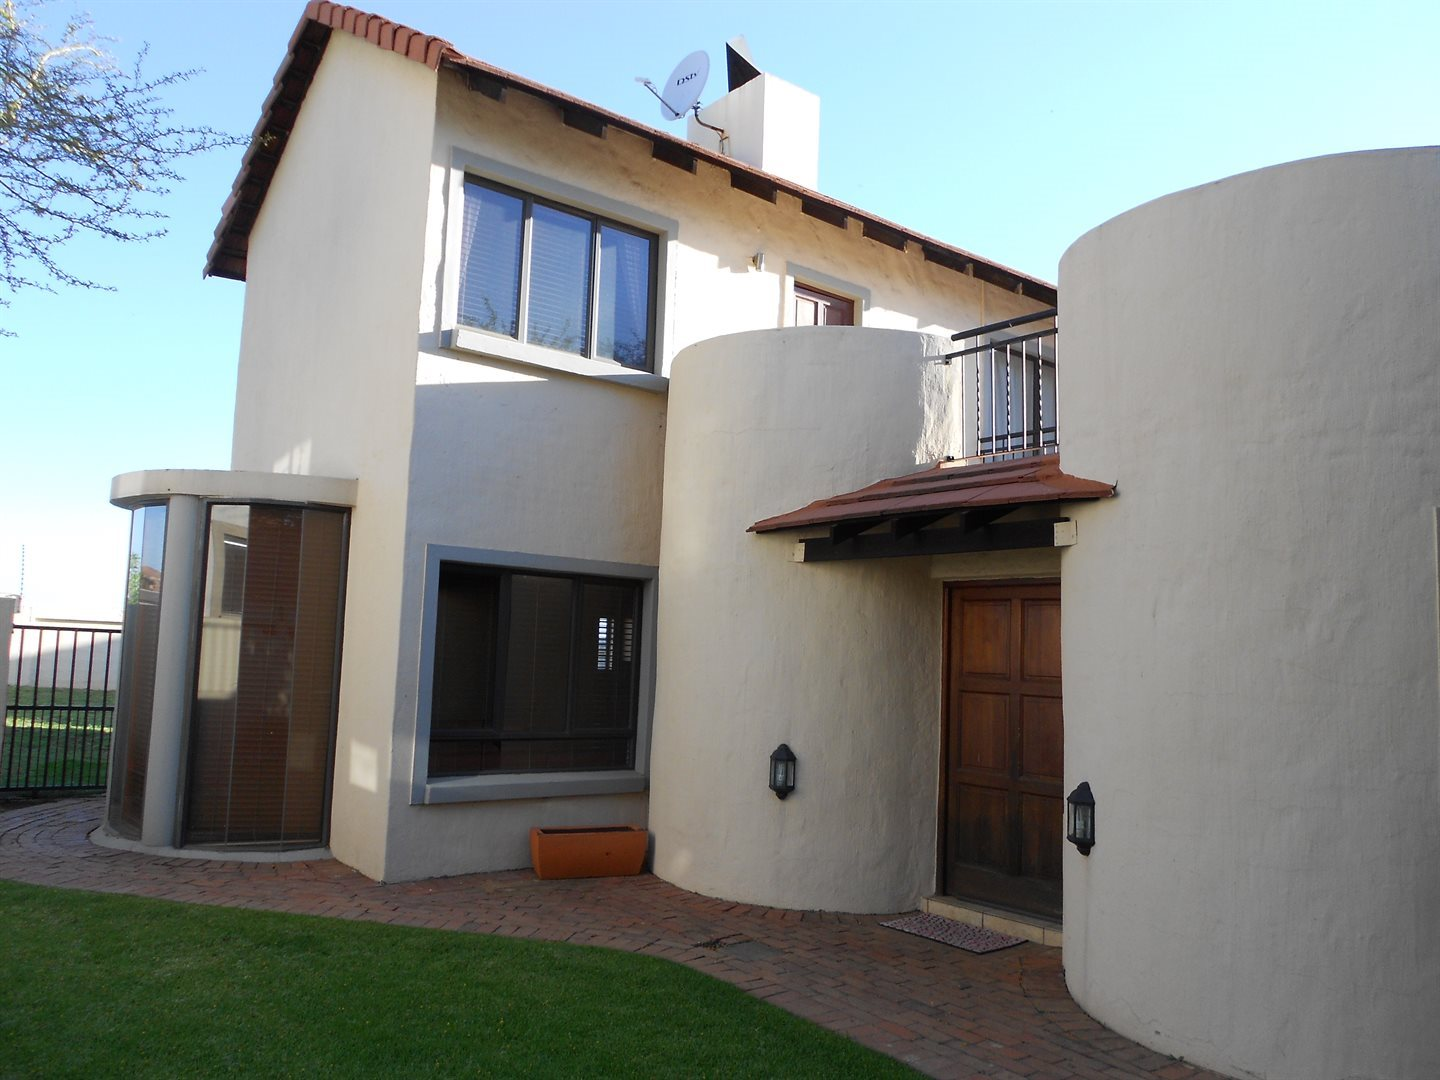 Centurion, Valley View Estate Property  | Houses For Sale Valley View Estate, Valley View Estate, House 3 bedrooms property for sale Price:2,930,000